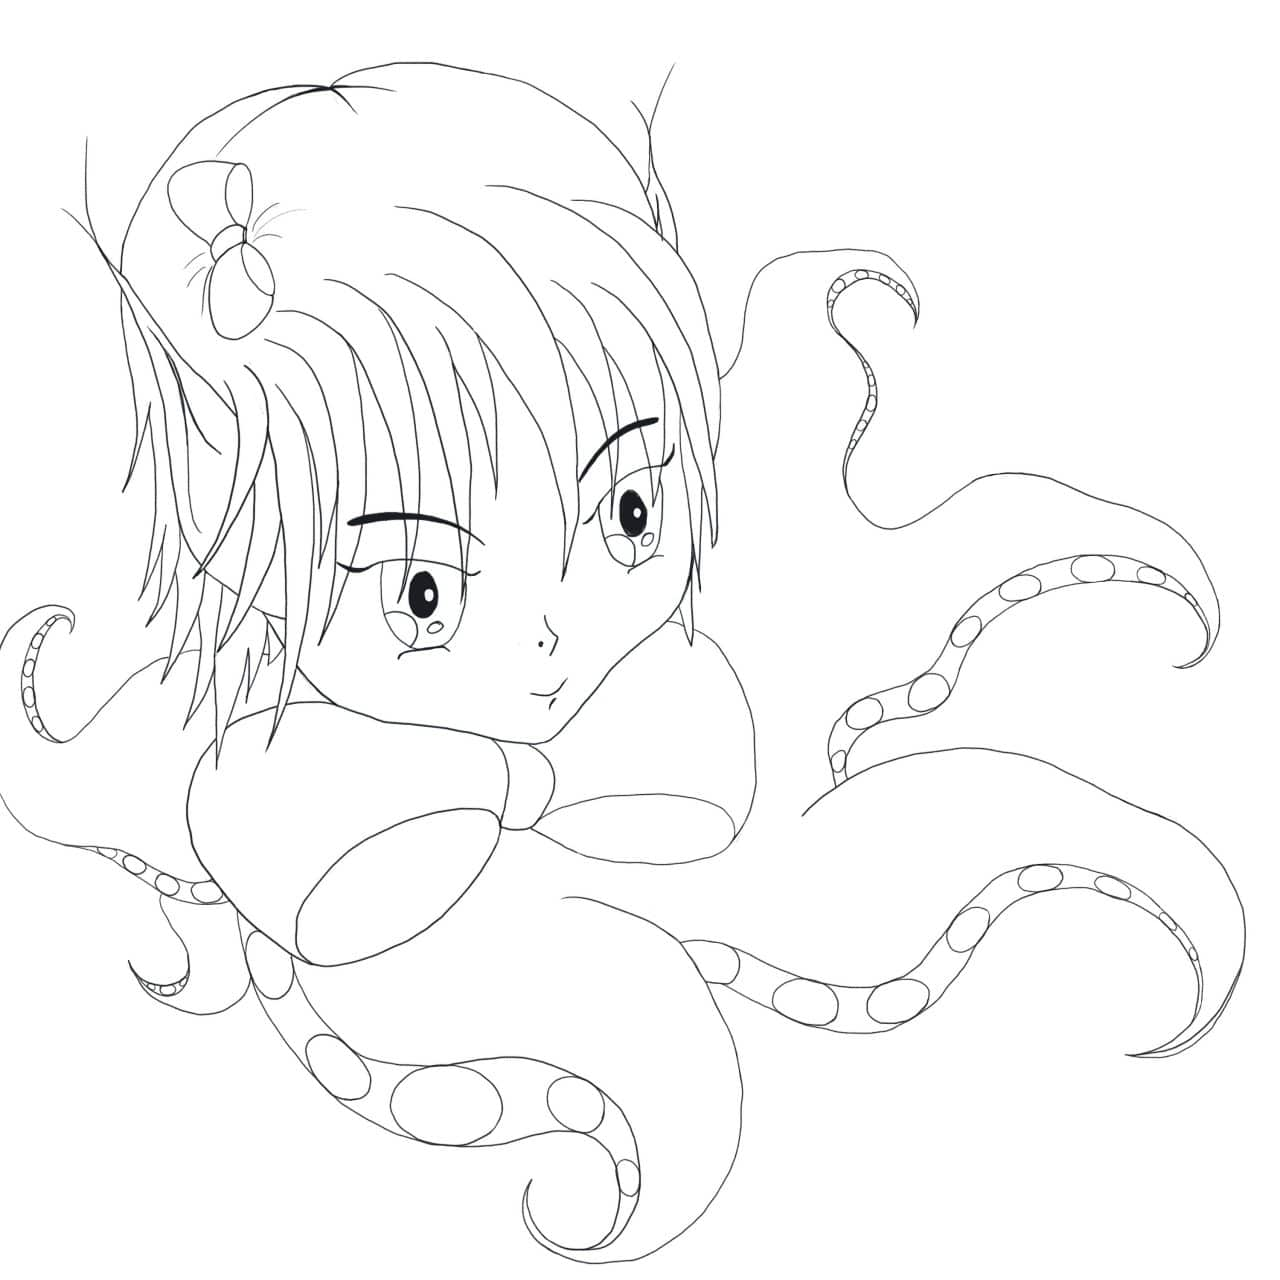 octopus_girl-ink